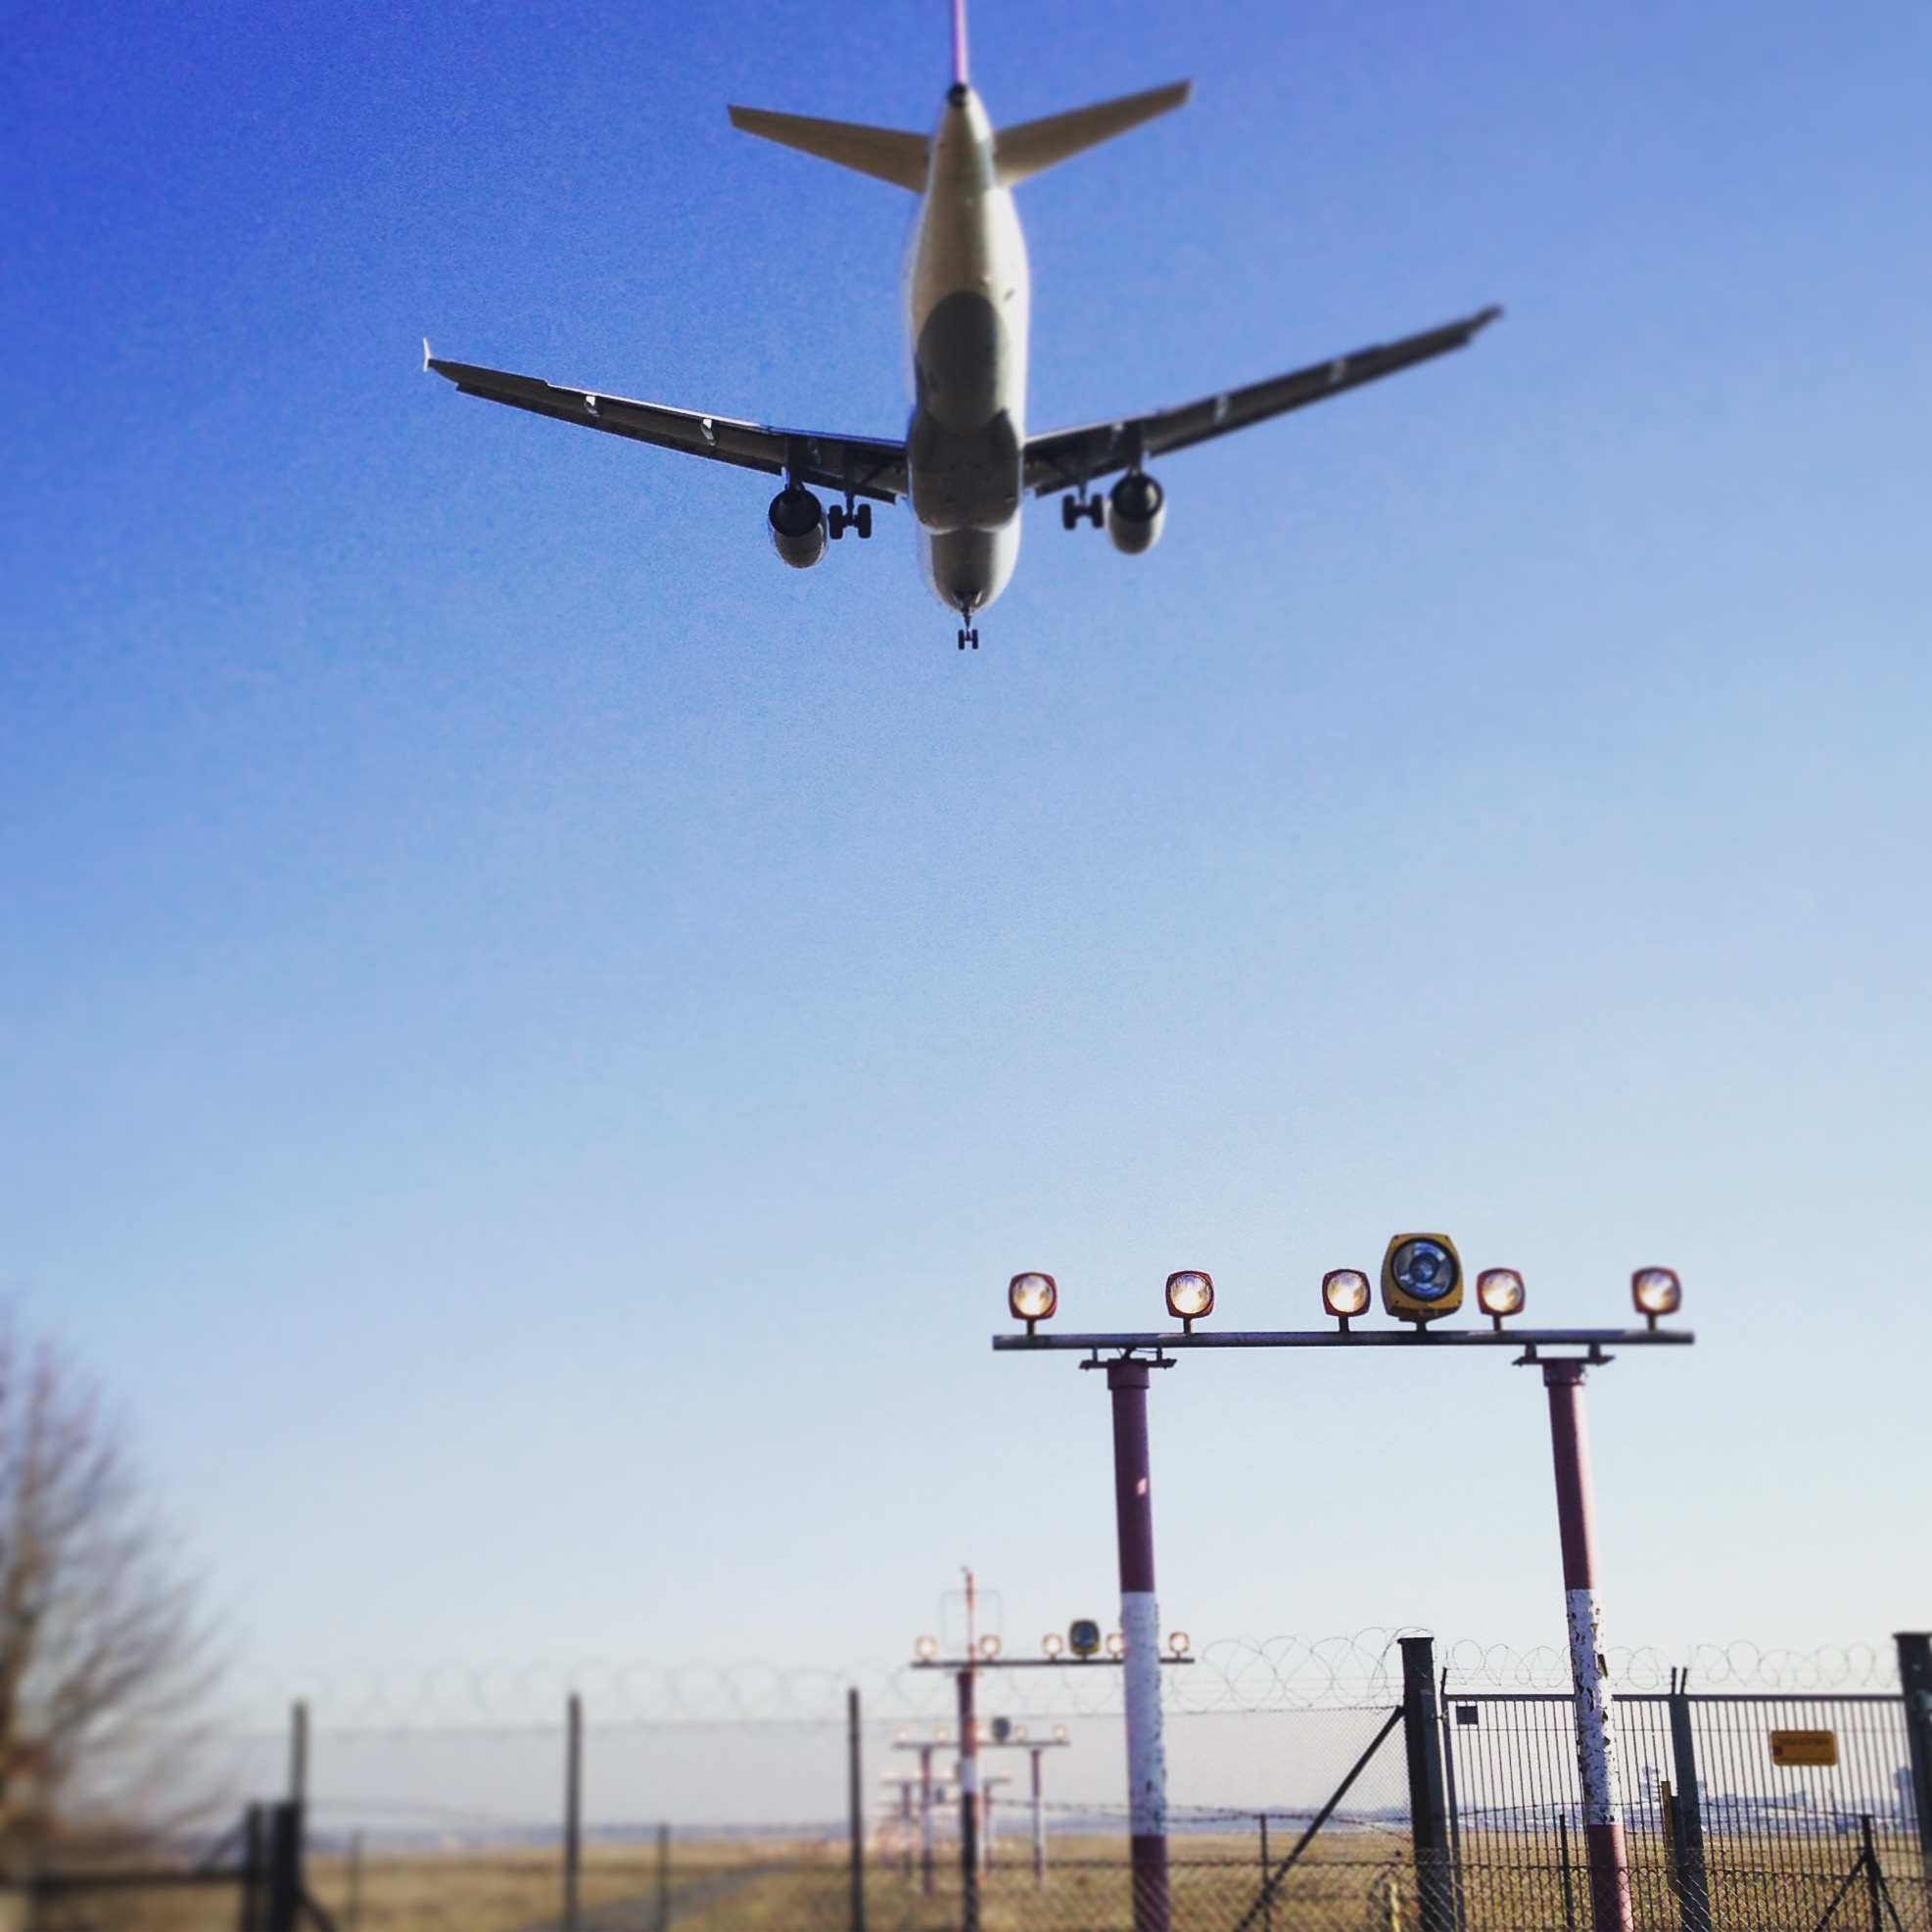 Running past the approach to Tegel airport